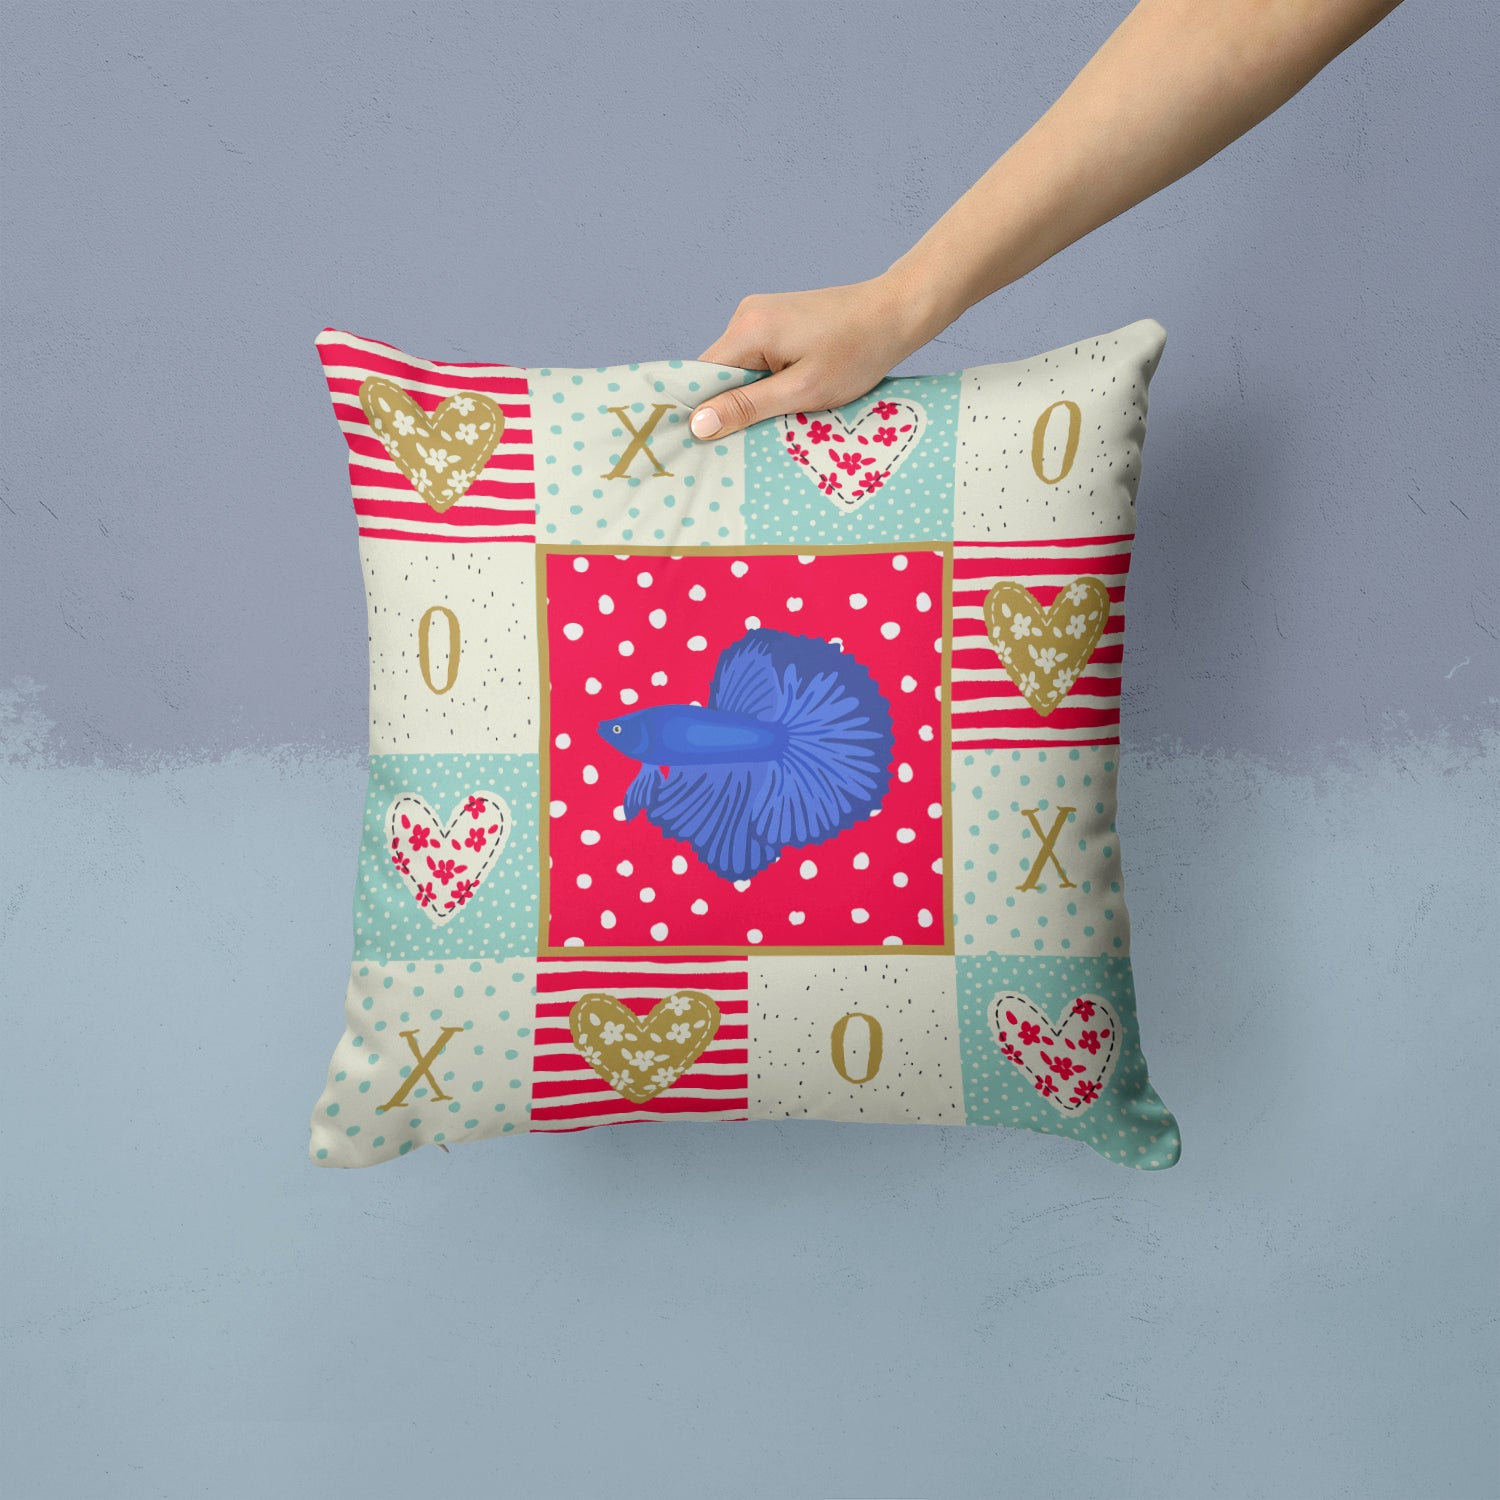 Delta Tail Betta Fish Love Fabric Decorative Pillow CK5468PW1414 by Caroline's Treasures